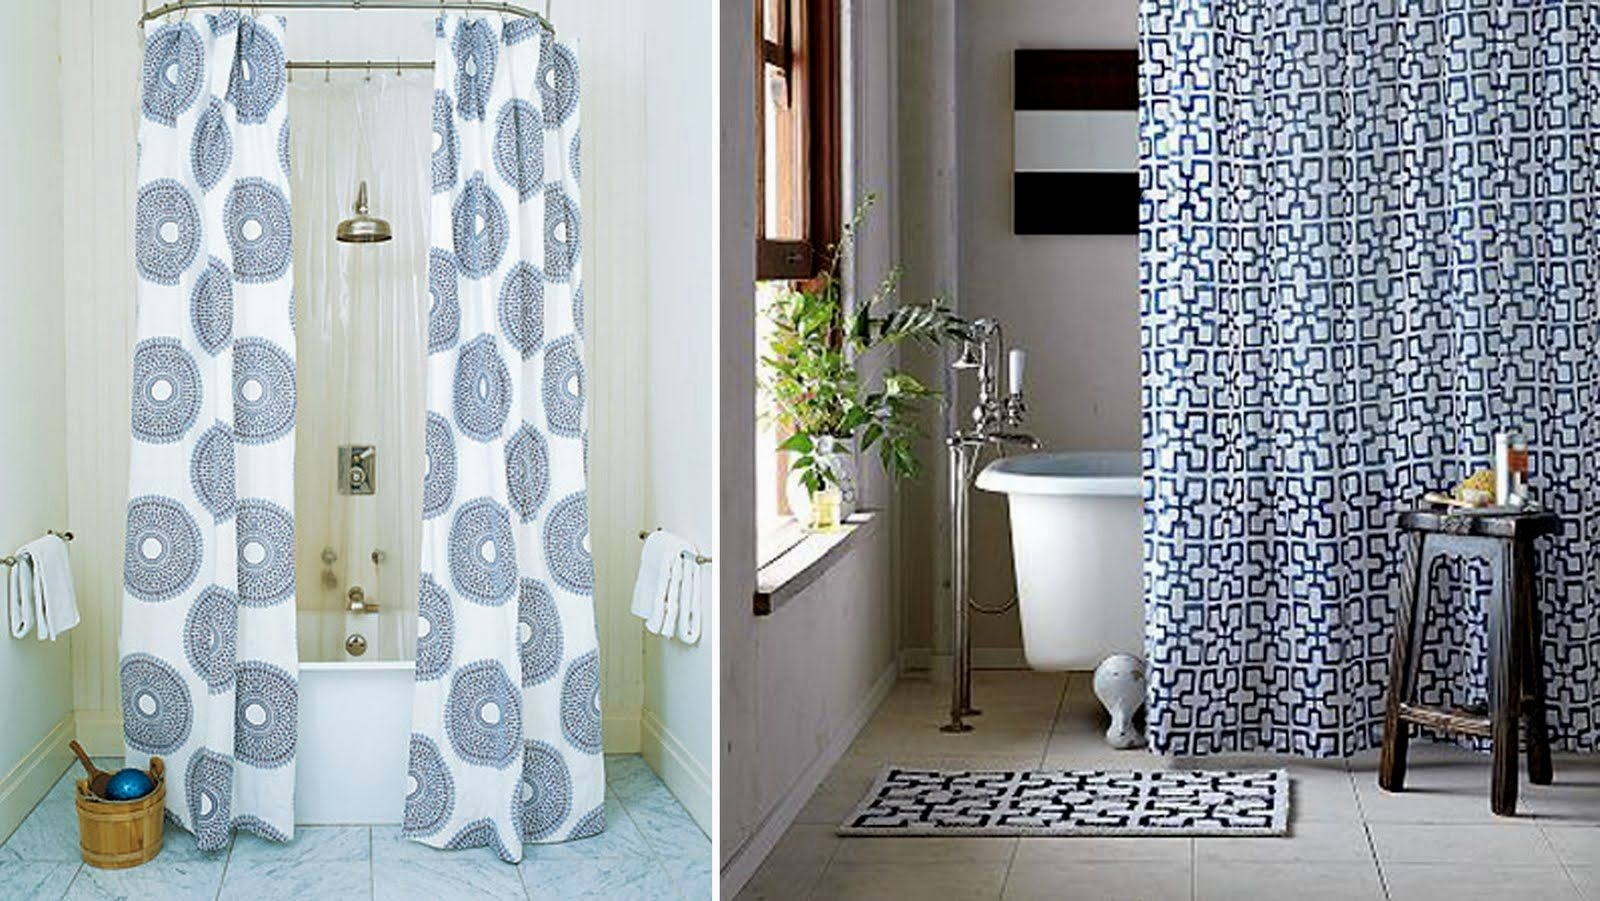 Home Tips Absolute Privacy And Relax With Crate And Barrel Regarding Double Panel Shower Curtains (View 25 of 25)